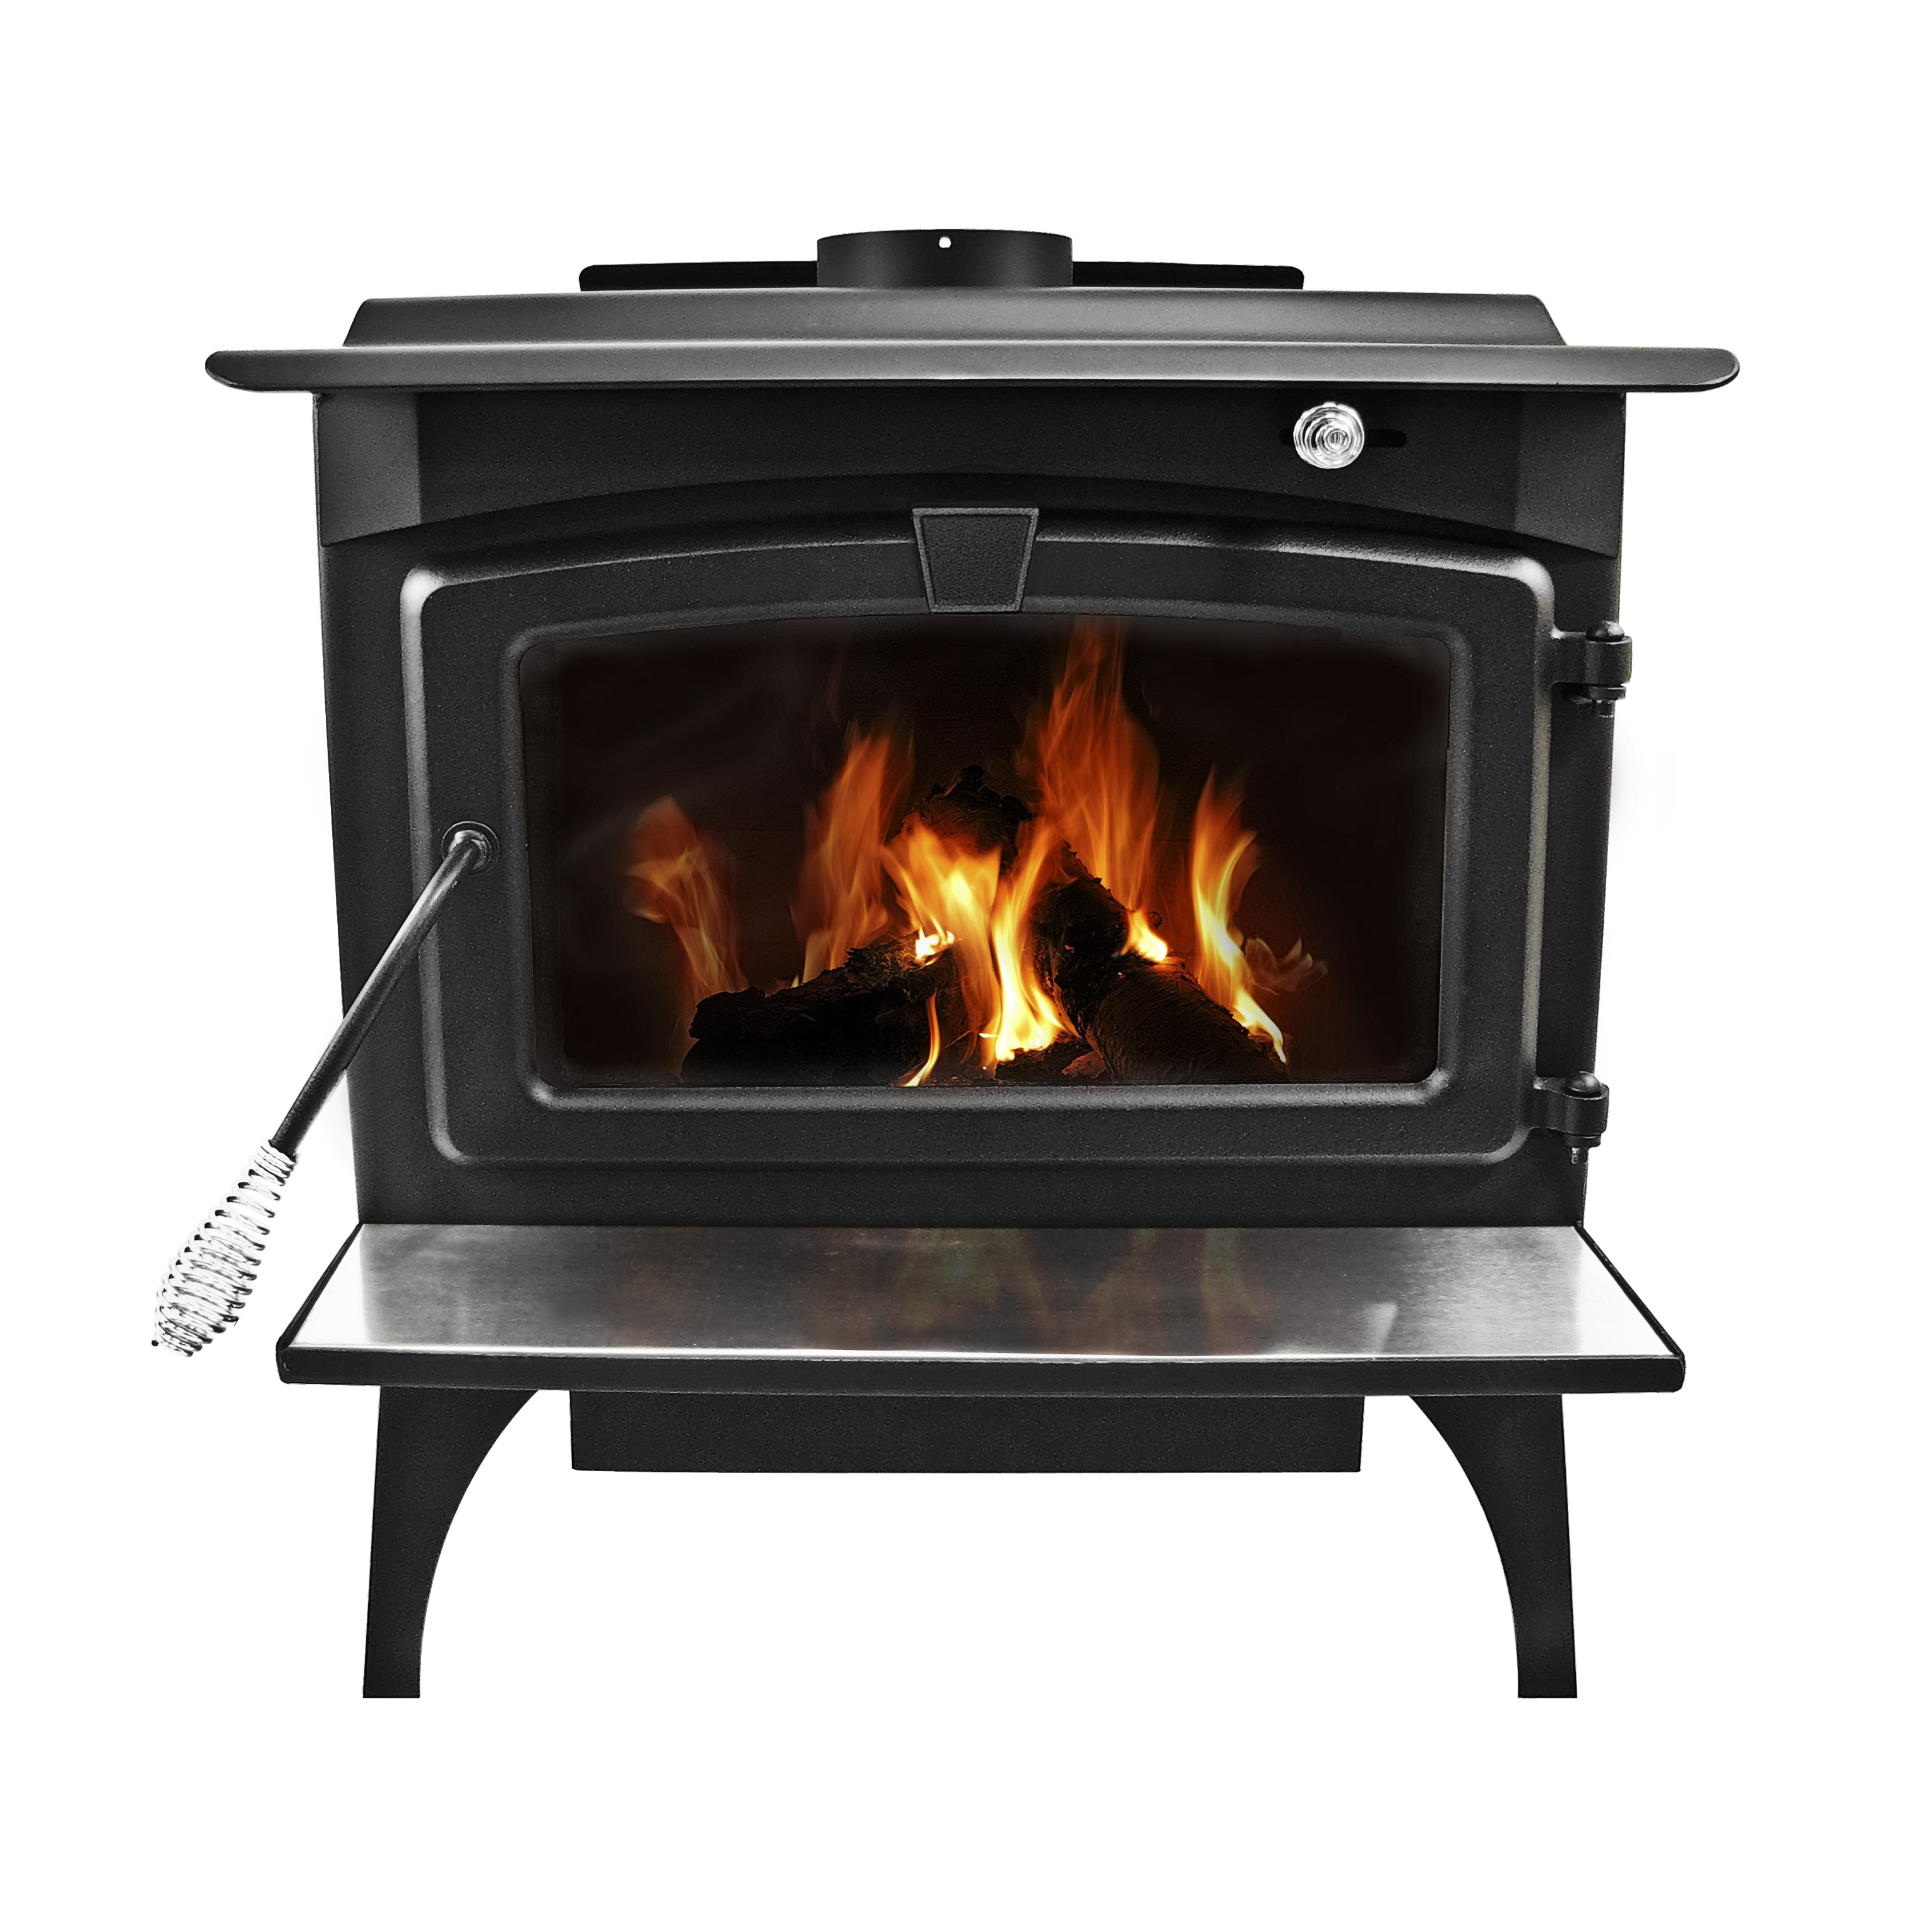 Pleasant Hearth 2,200 Sq. Ft. Large Wood Burning Stove